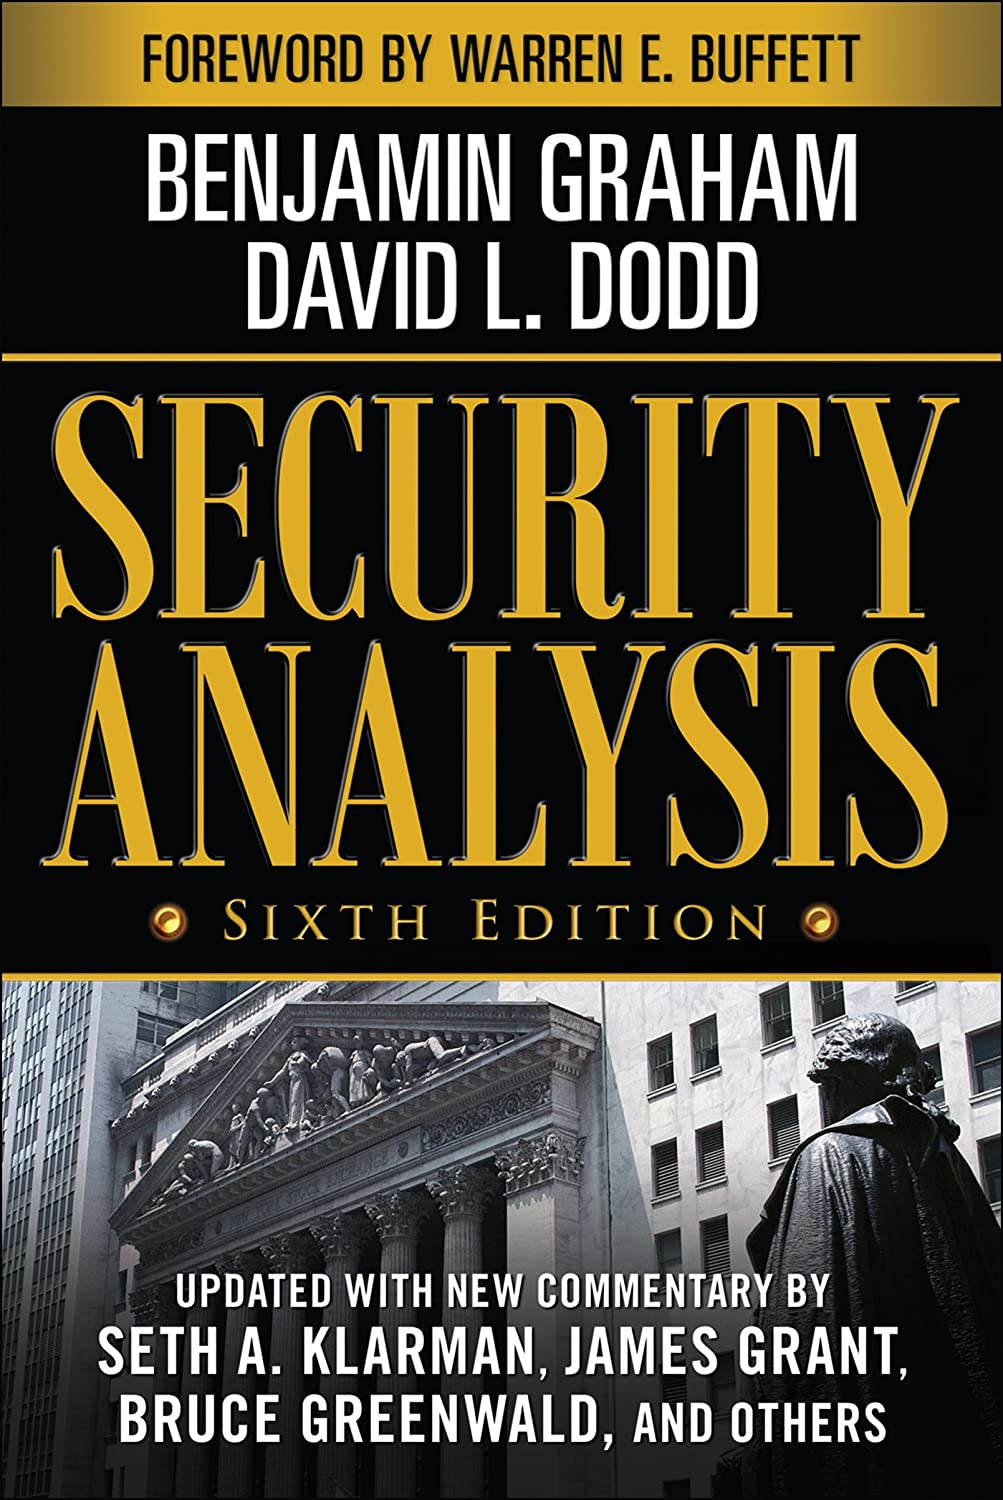 Security Analysis: Sixth Edition, Foreword by Warren Buffett ...